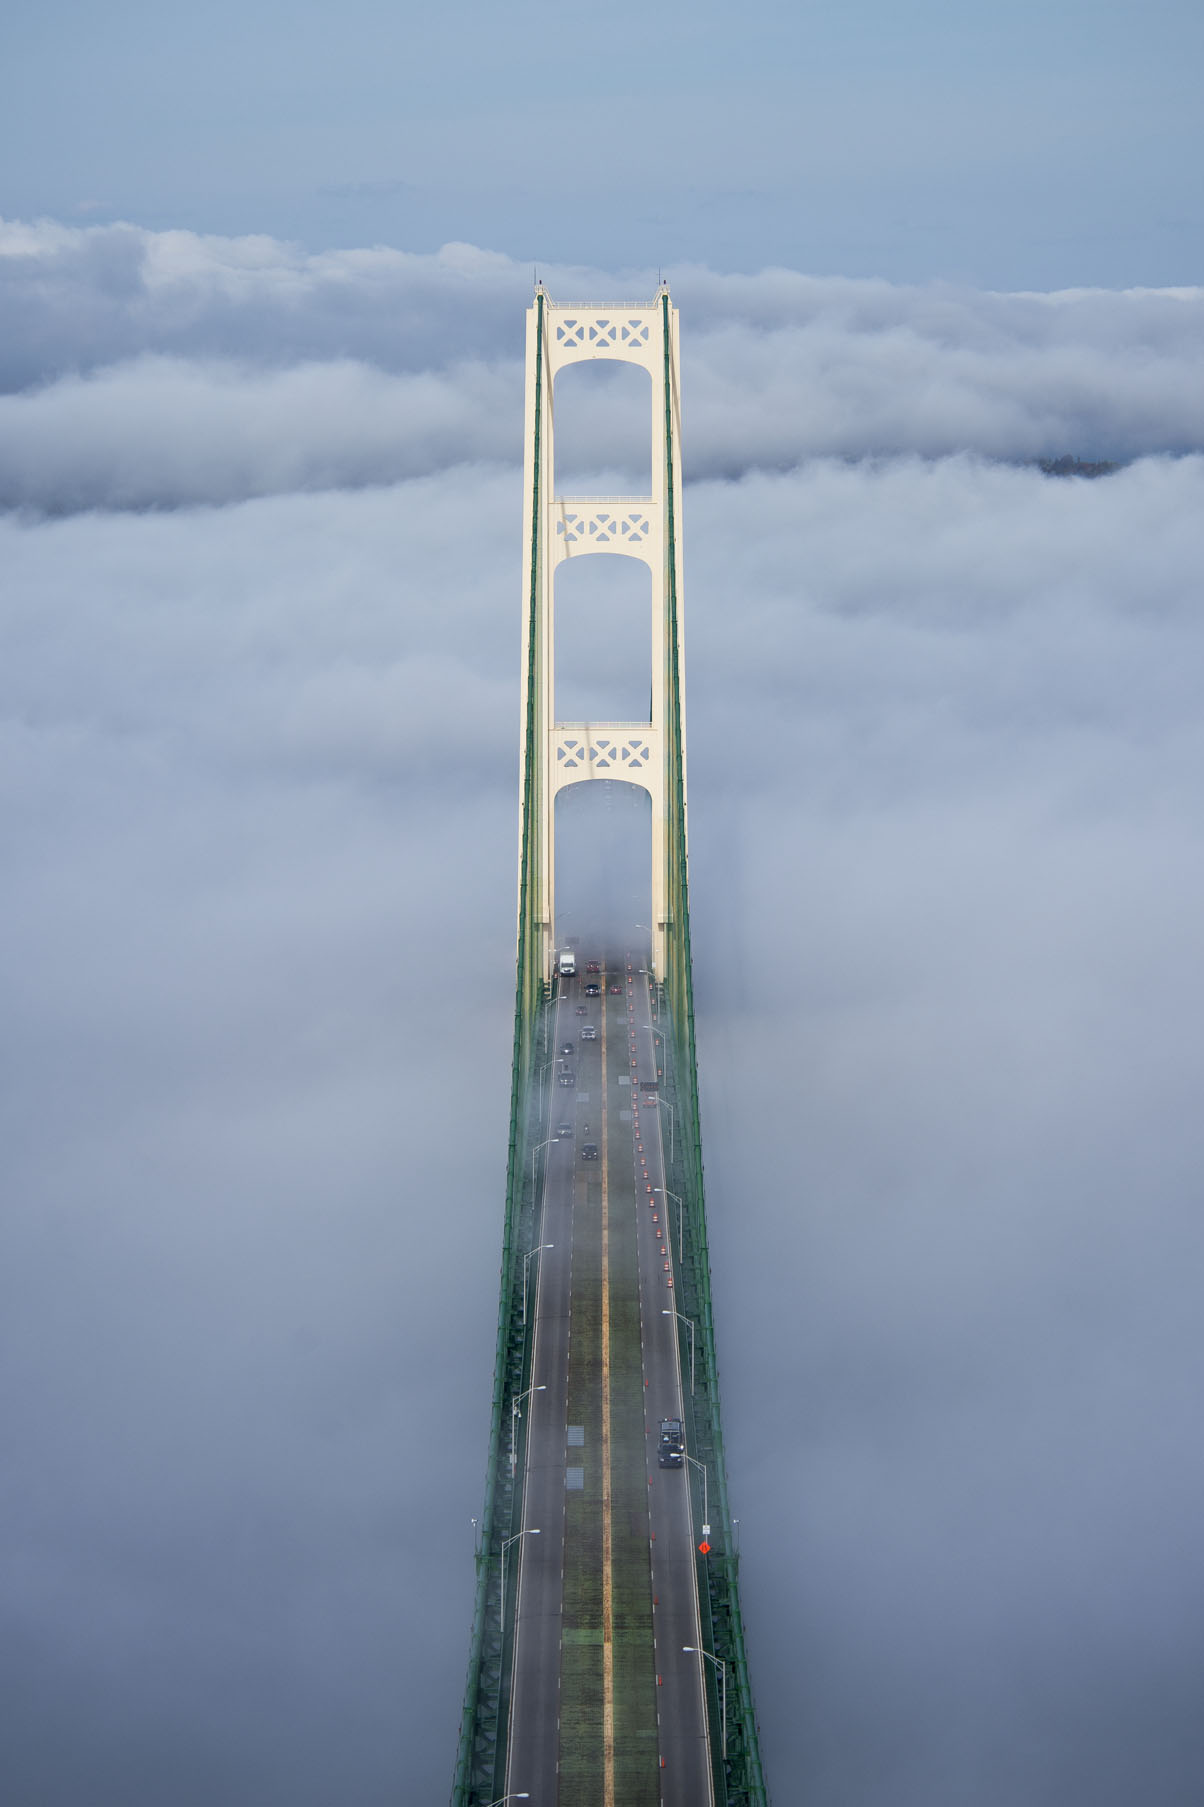 Scenic, Straits Of Mackinac, Mackinac Bridge, shot from the South Tower, looking at the North Tower in the directon of St. Ignace with heavy fog washing over the bridge deck.